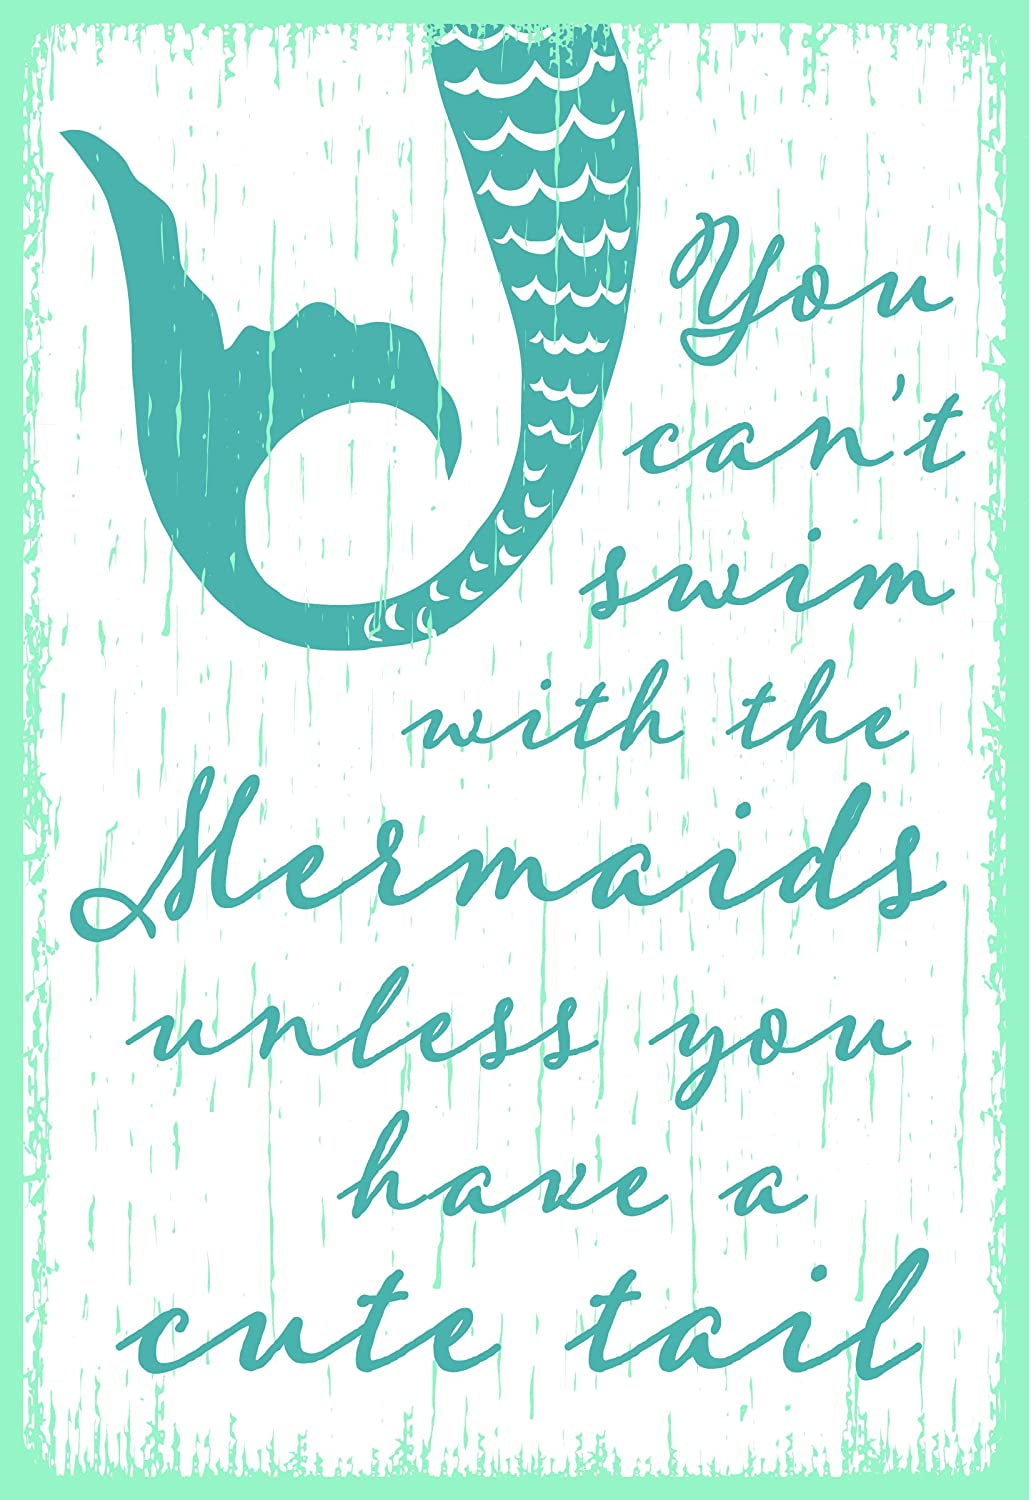 You Cant Swim with the Mermaids 5.5 x 8 Wooden Block Sign by My Word!